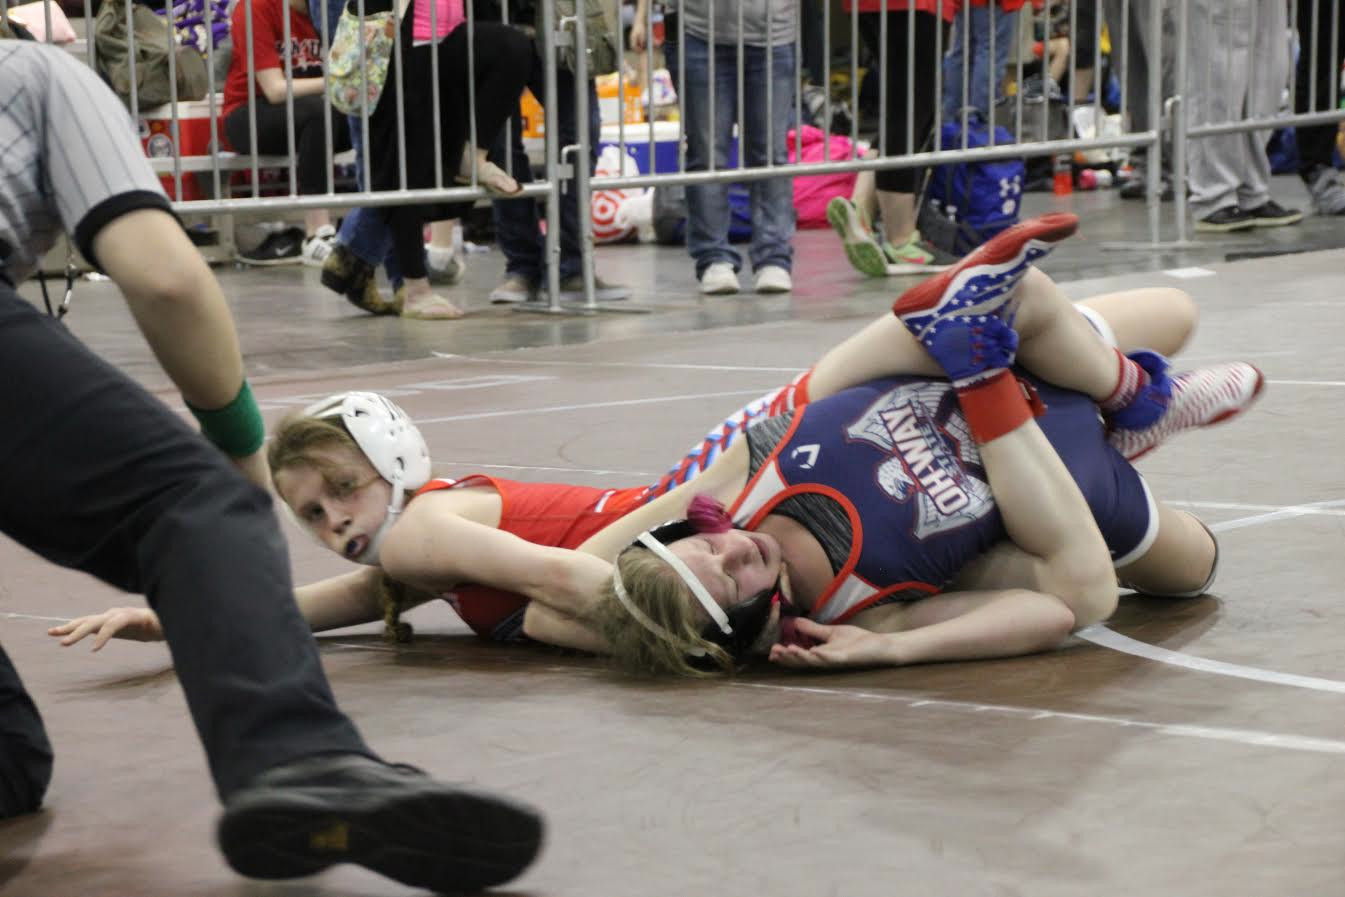 Kailey Rees wrestles during a third-place match, which she would eventually win, at a national event.